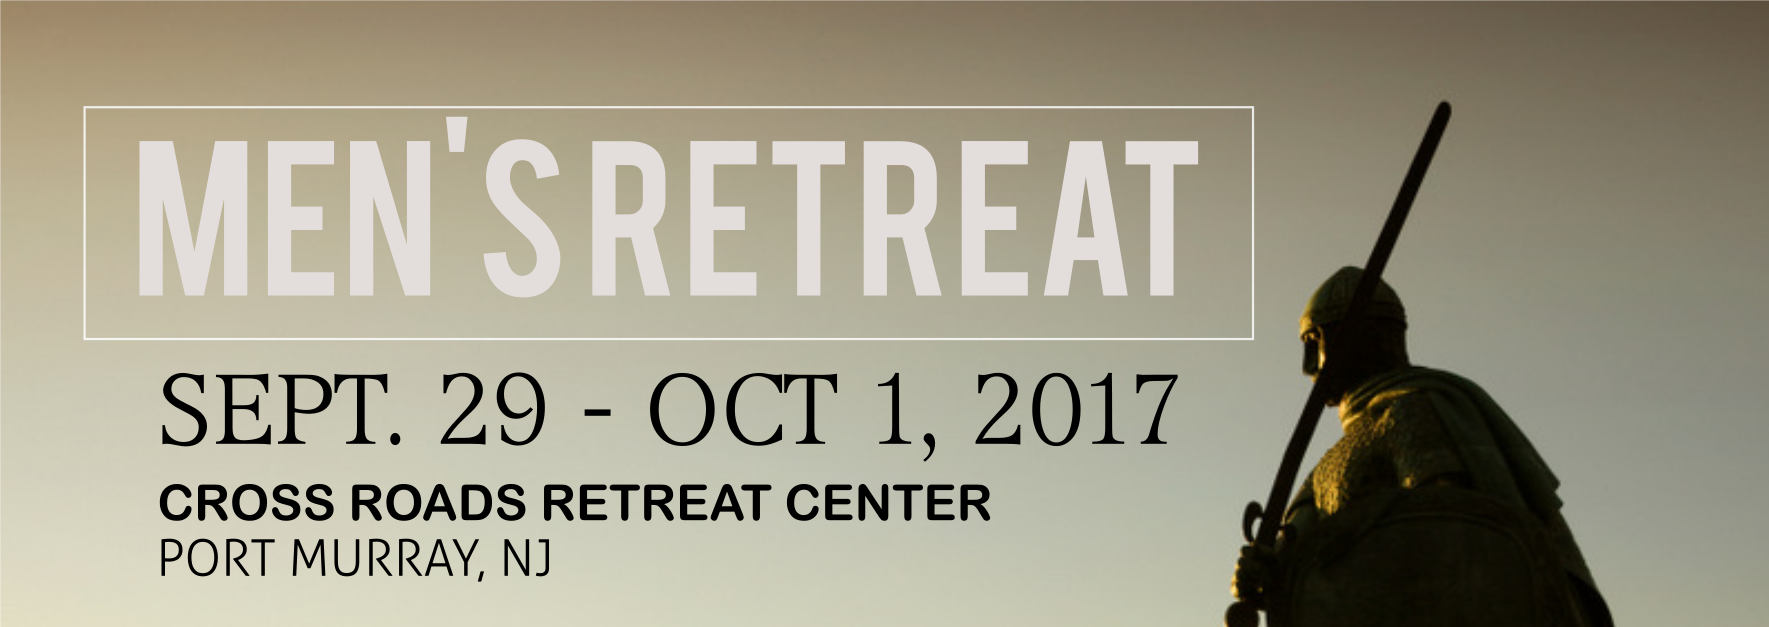 Mens Retreat 2017 Banner